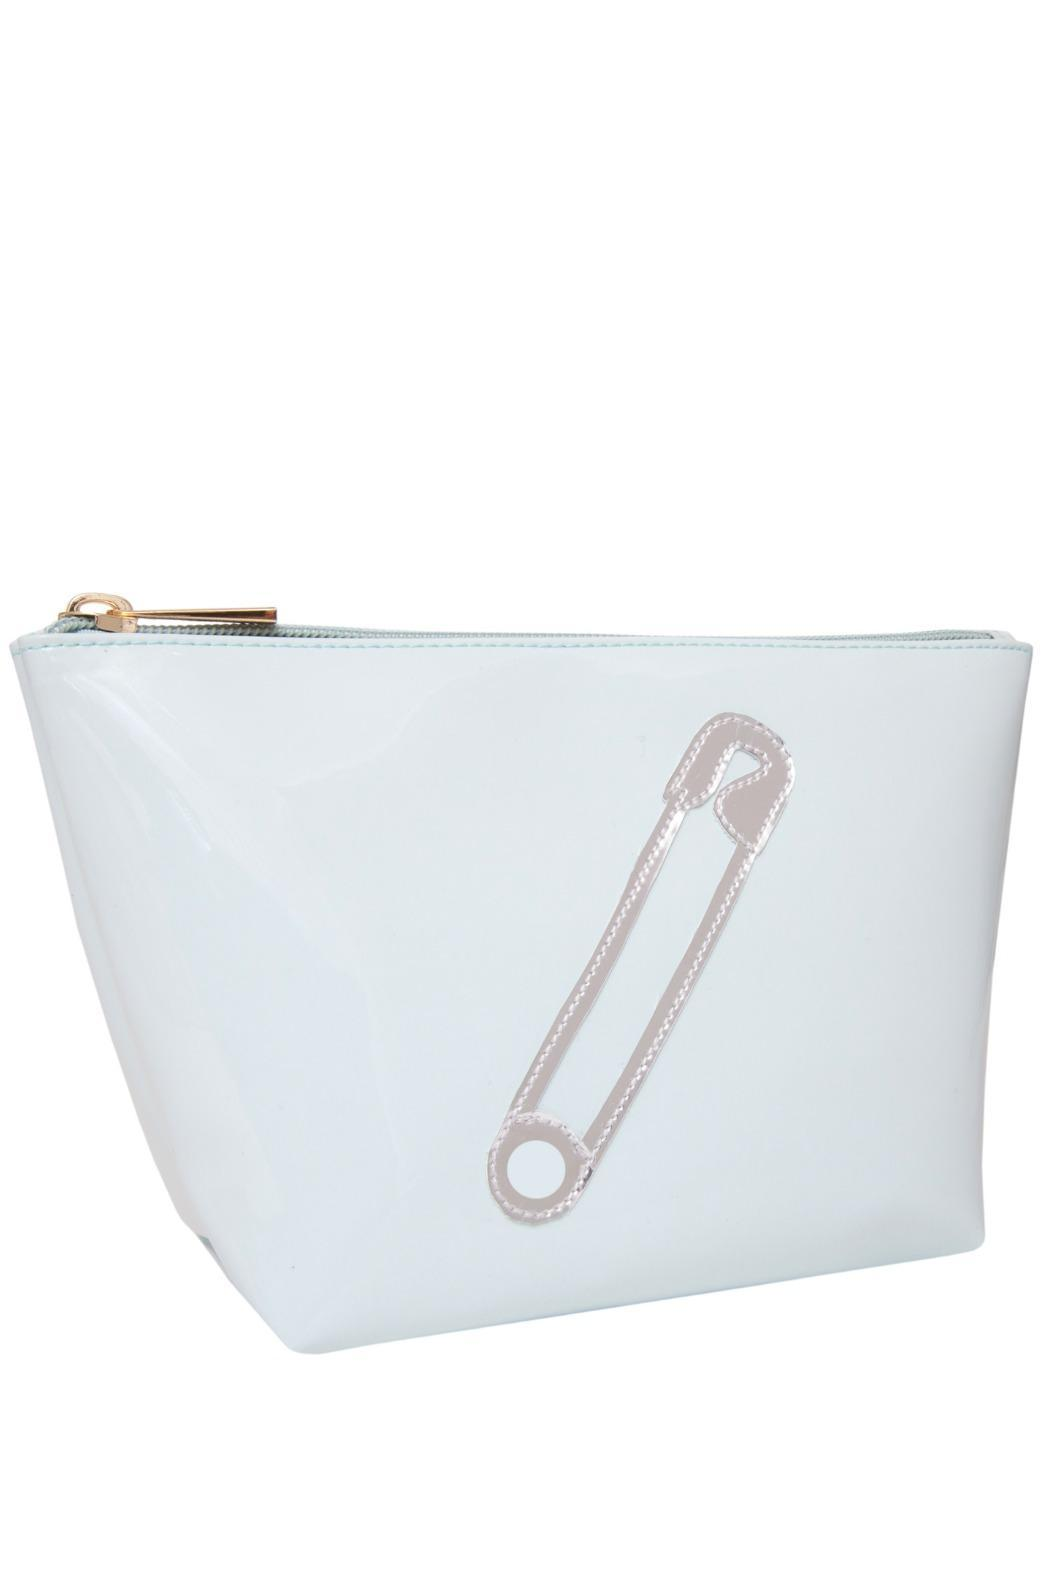 Lolo Bags Safety Pin Case - Front Cropped Image